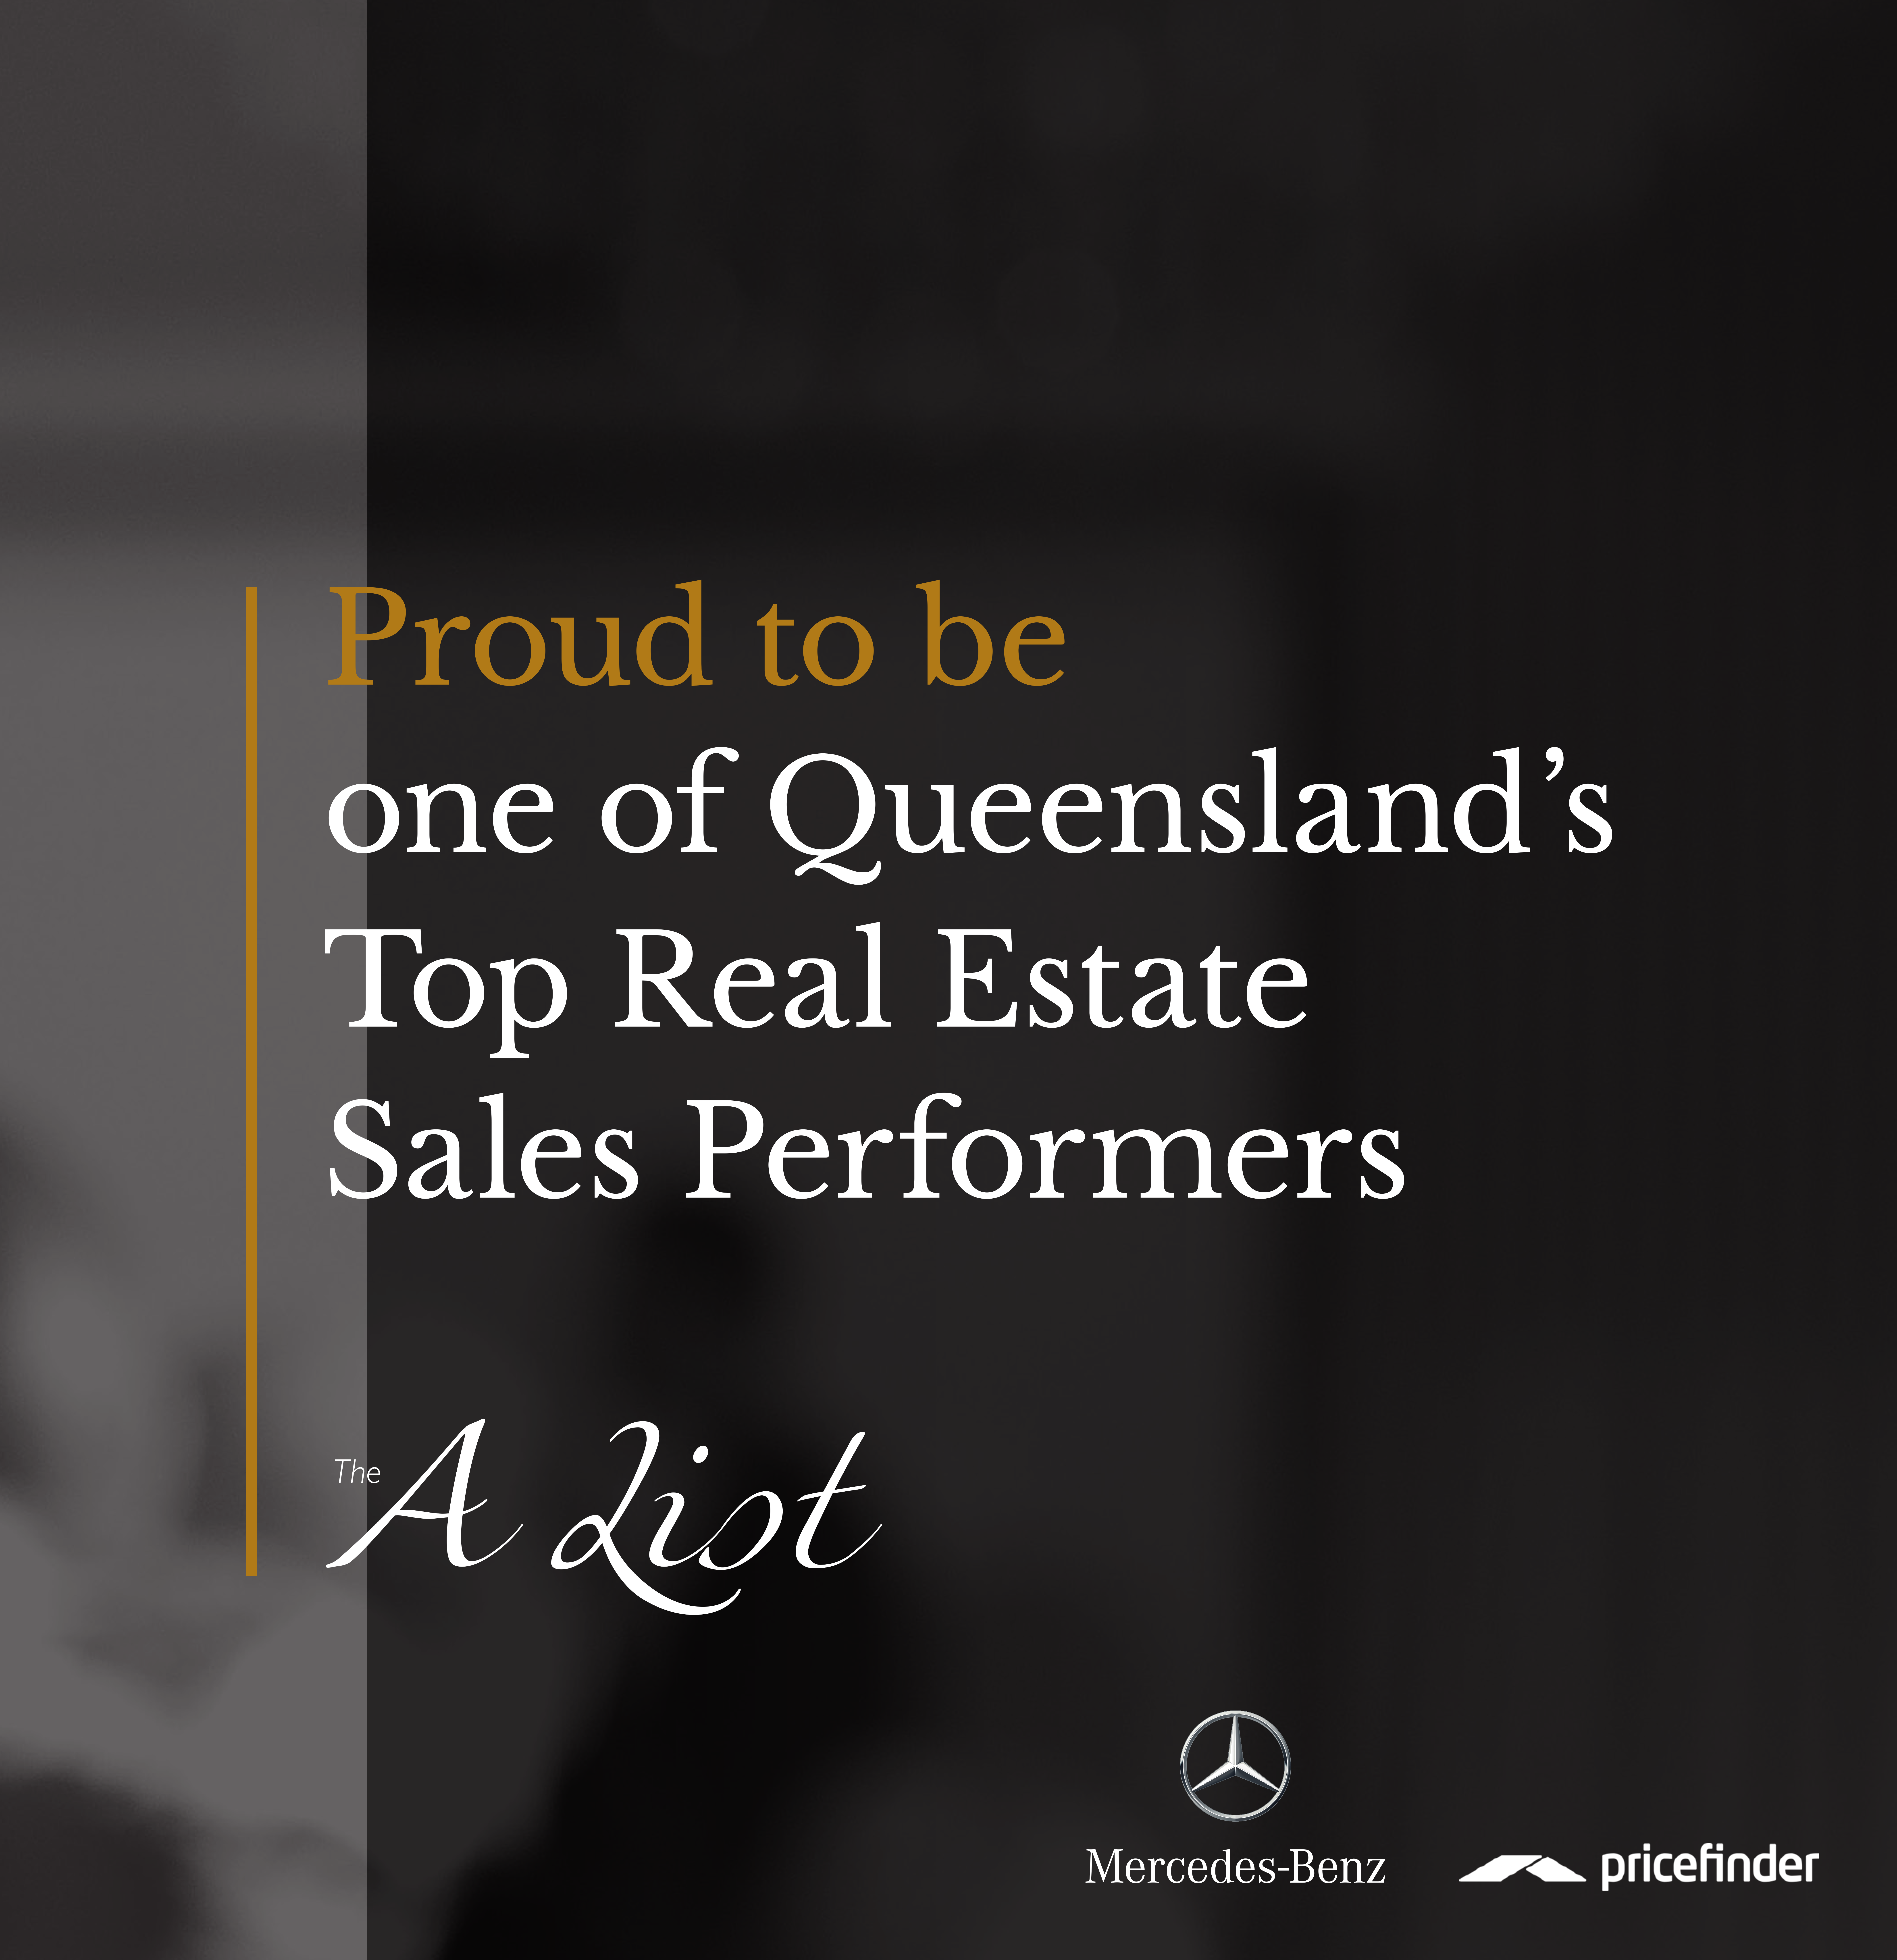 York Realty's A-List Salesperson